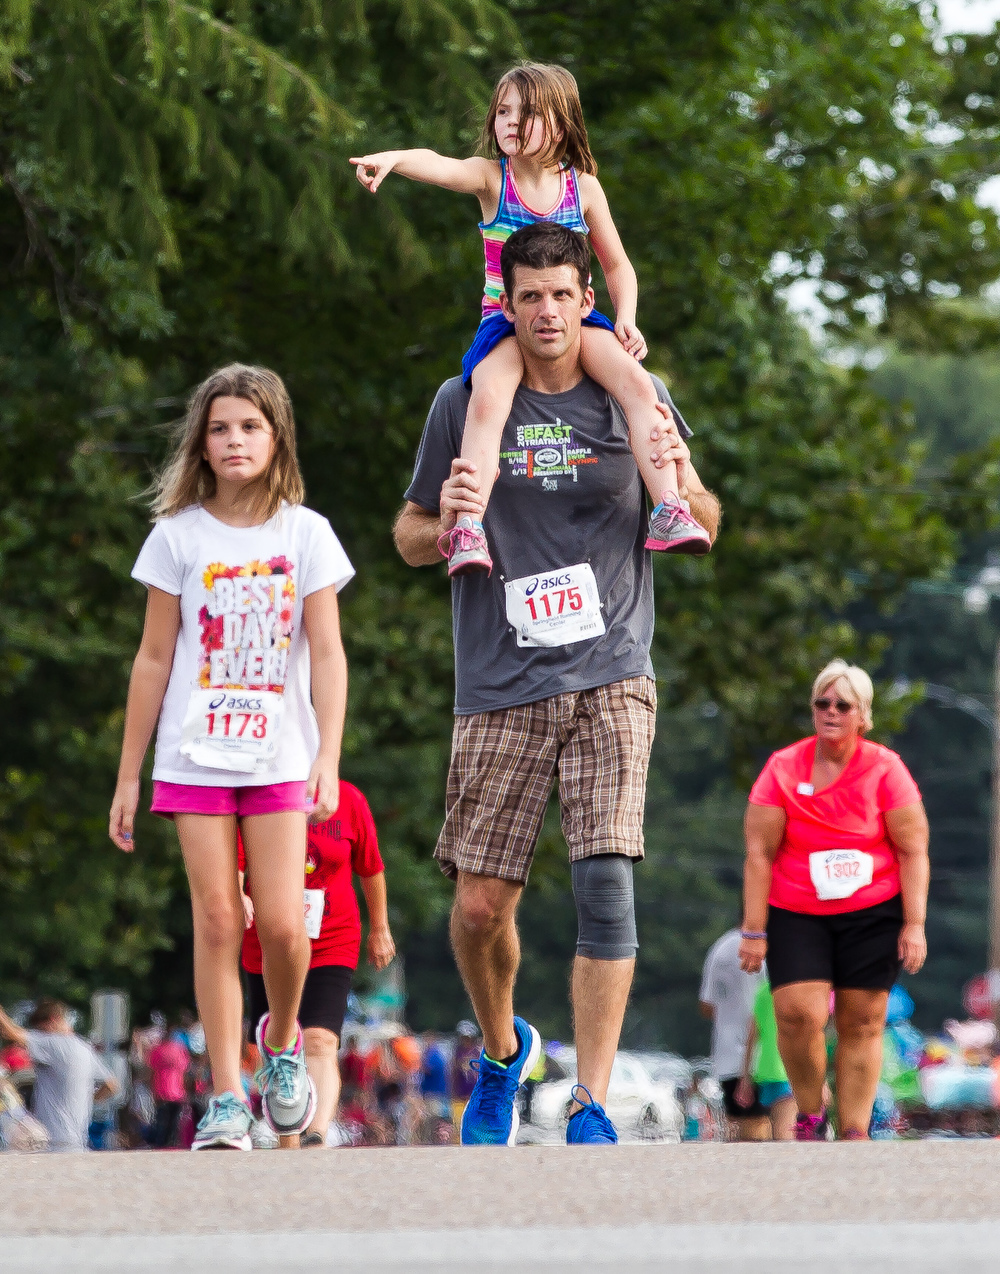 Josh Leinbach heads to the finish line with his daughter Lilianna, 5, atop his shoulders during the Illinois State Fair Parade Run at the Illinois State Fairgrounds, Thursday, Aug. 13, 2015, in Springfield, Ill. Justin L. Fowler/The State Journal-Register